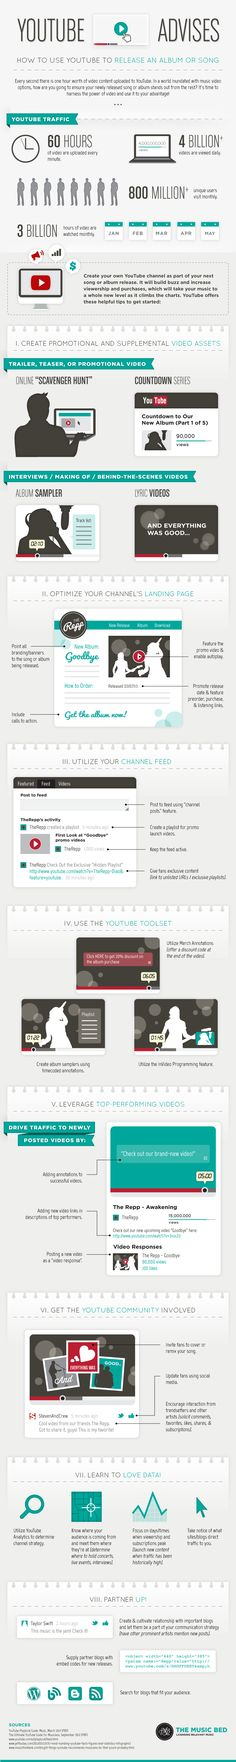 Cómo usar YouTube para promocionar tu música #infografia #infographic #marketing